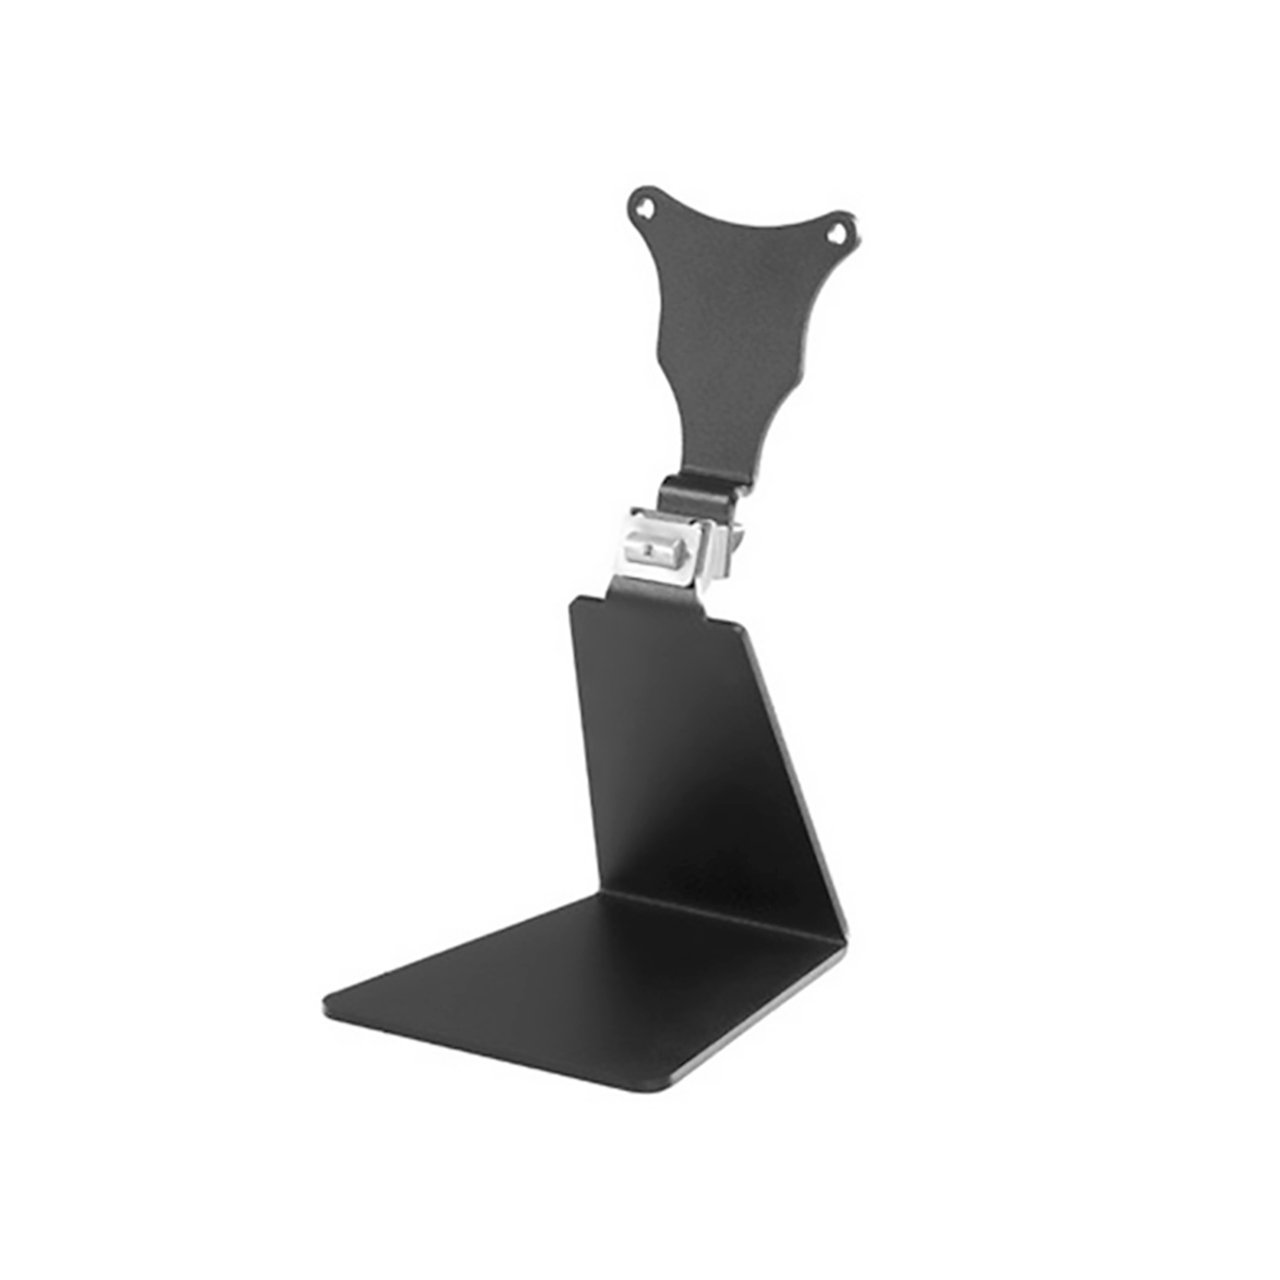 Genelec 8020-320 L-shape Table Stand for 8020 (SINGLE)